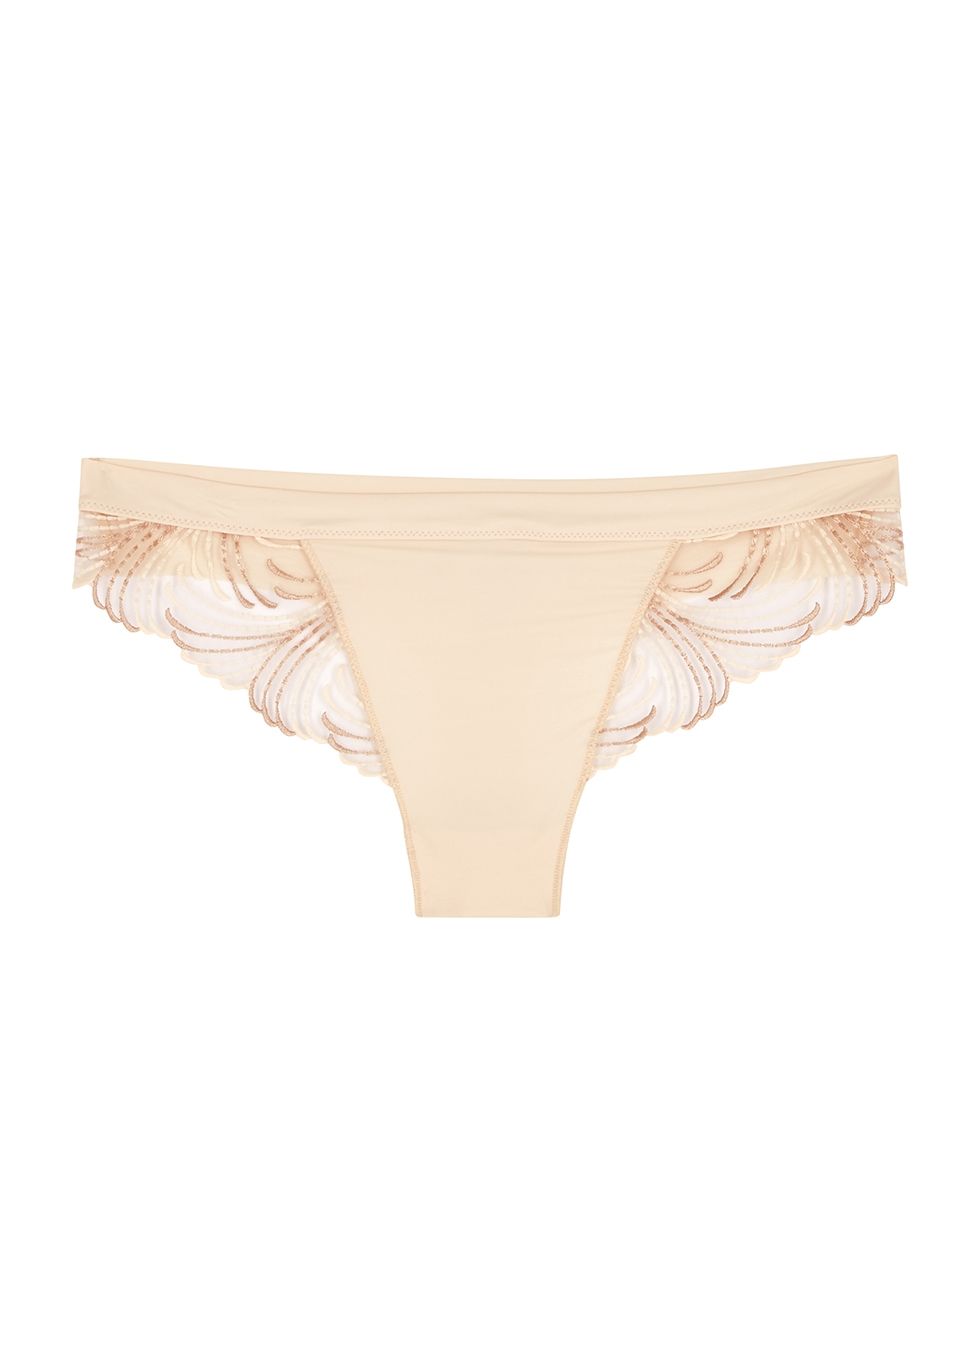 Nuance blush embroidered thong